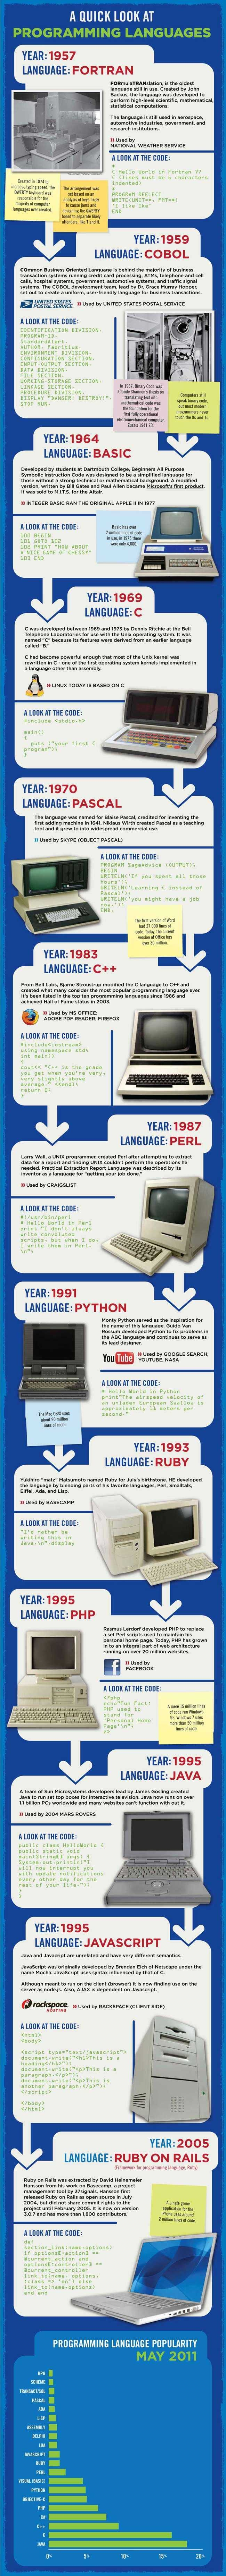 Curious about the programming languages in use all around you? This timeline-style infographic highlights the major programming languages of the last 50 years and where you, indirectly, experience them.